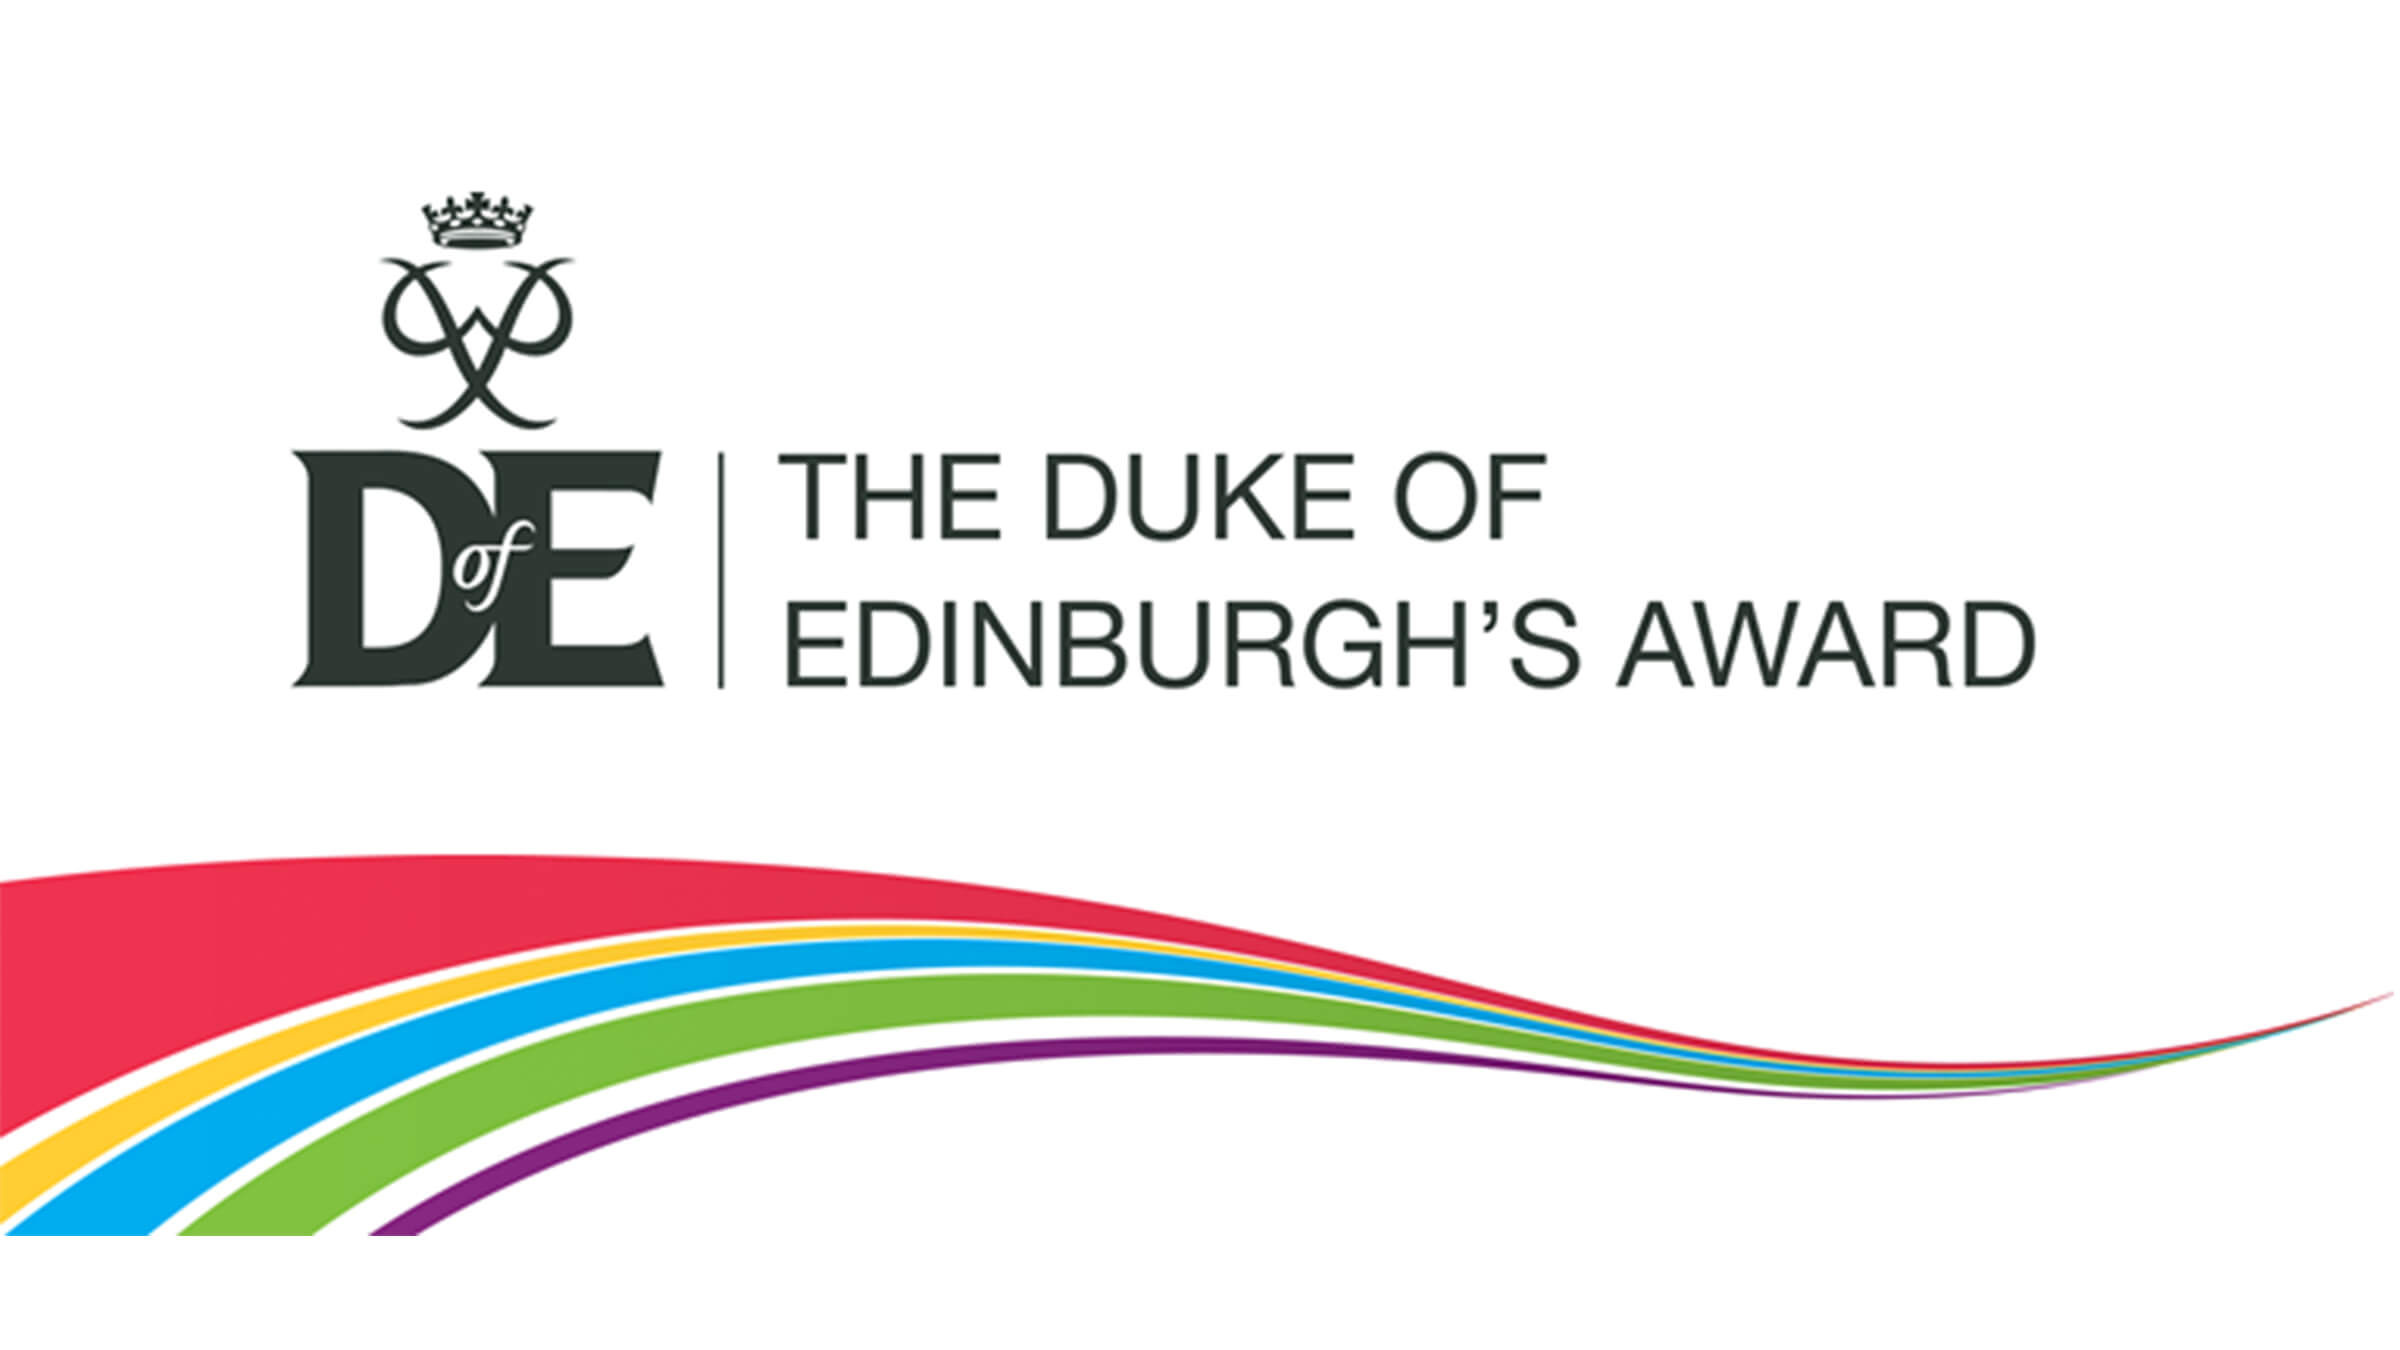 The-Duke-of-Edinburghs-Award-169-2400x13